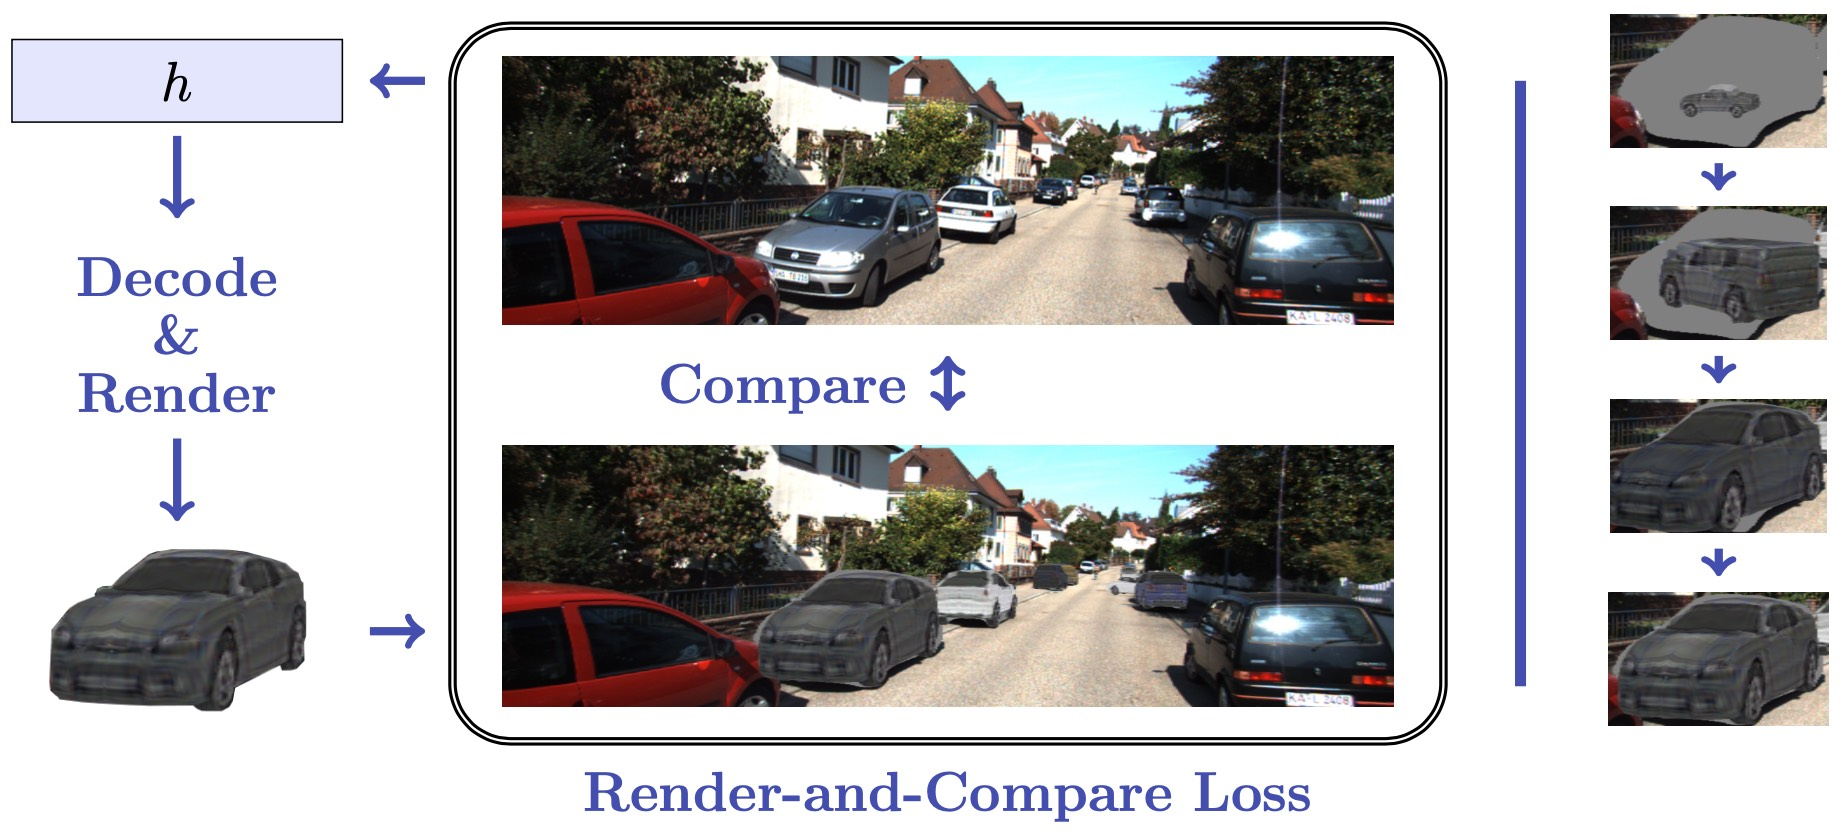 Monocular Differentiable Rendering for Self-Supervised 3D Object Detection